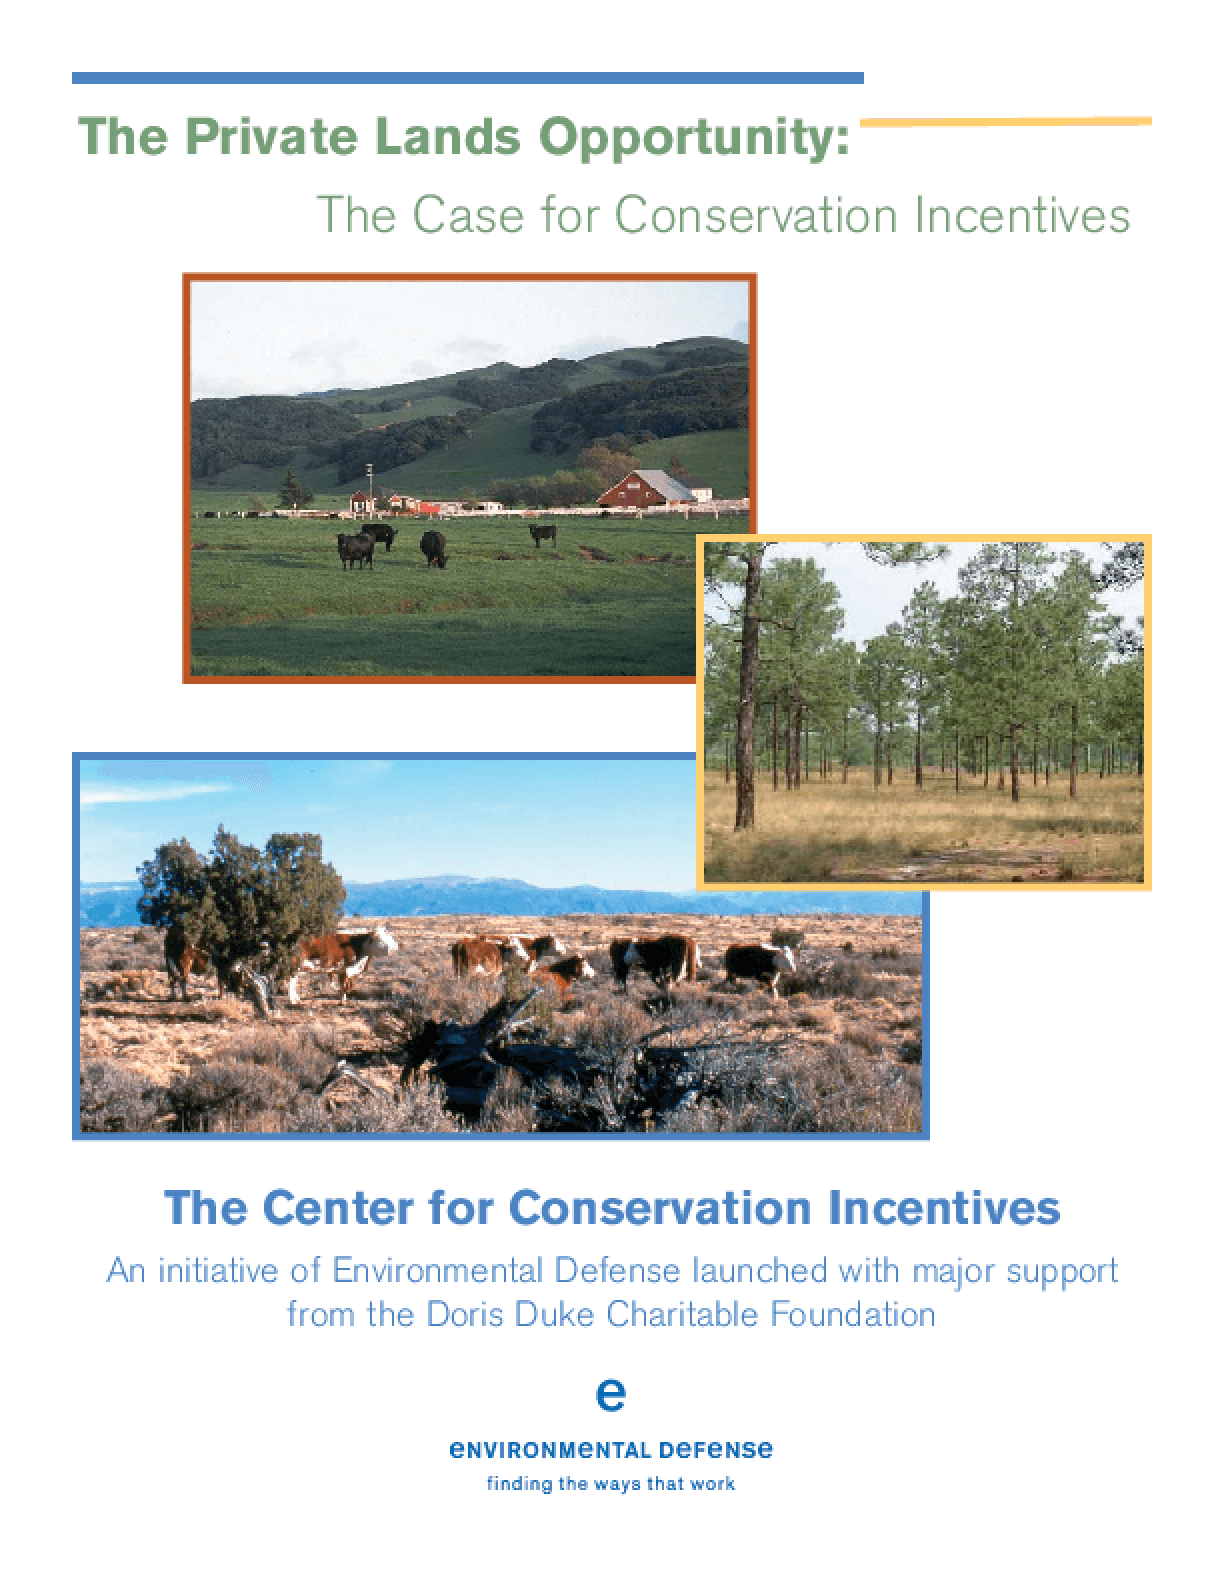 The Private Lands Opportunity: The Case for Conservation Incentives